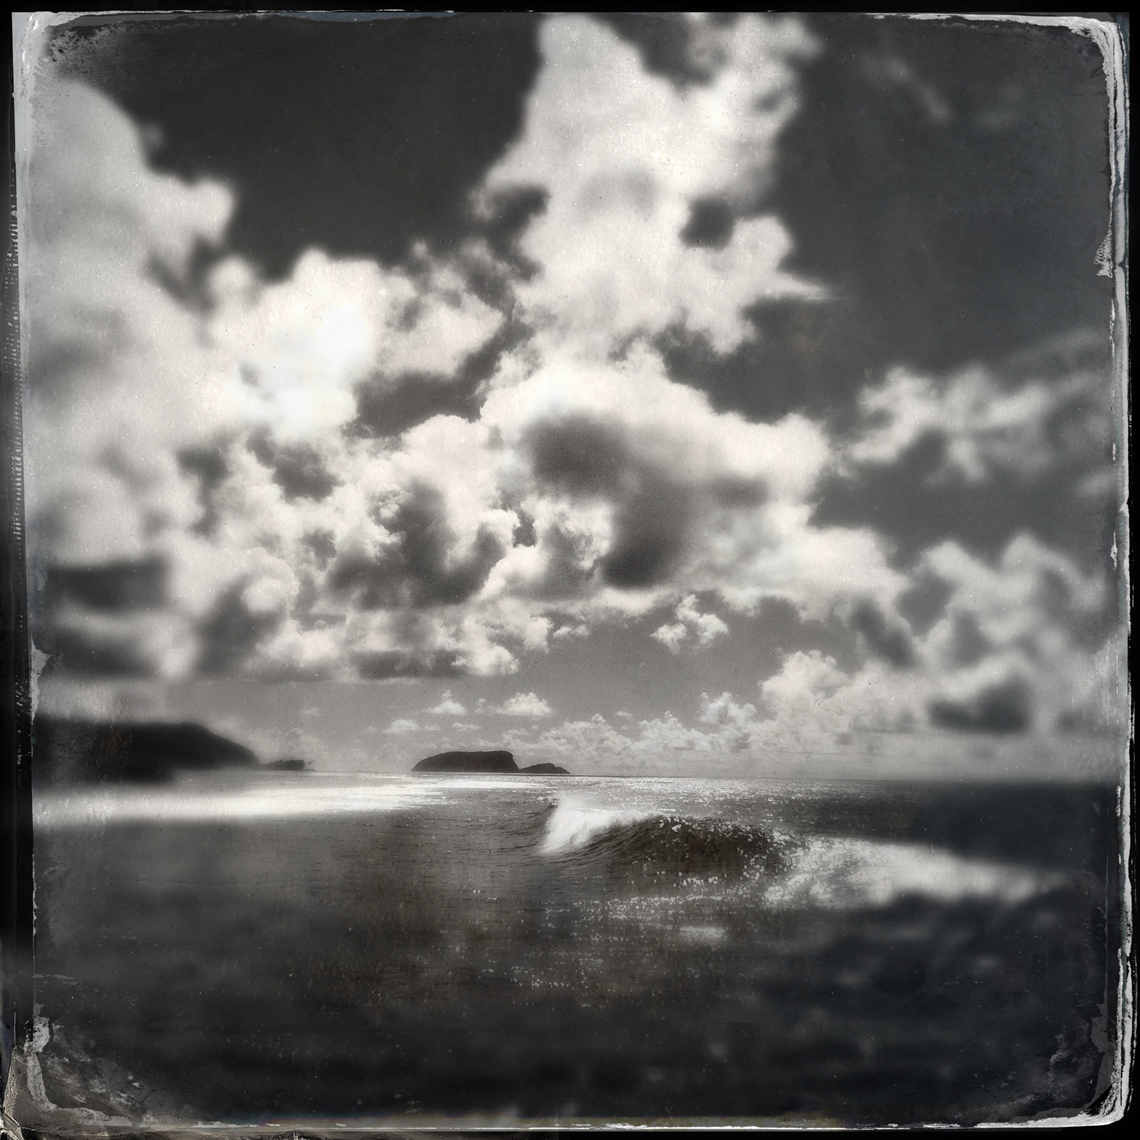 Jon Wyatt Photography - wave breaking in a bay, Samoa. Hipstamatic